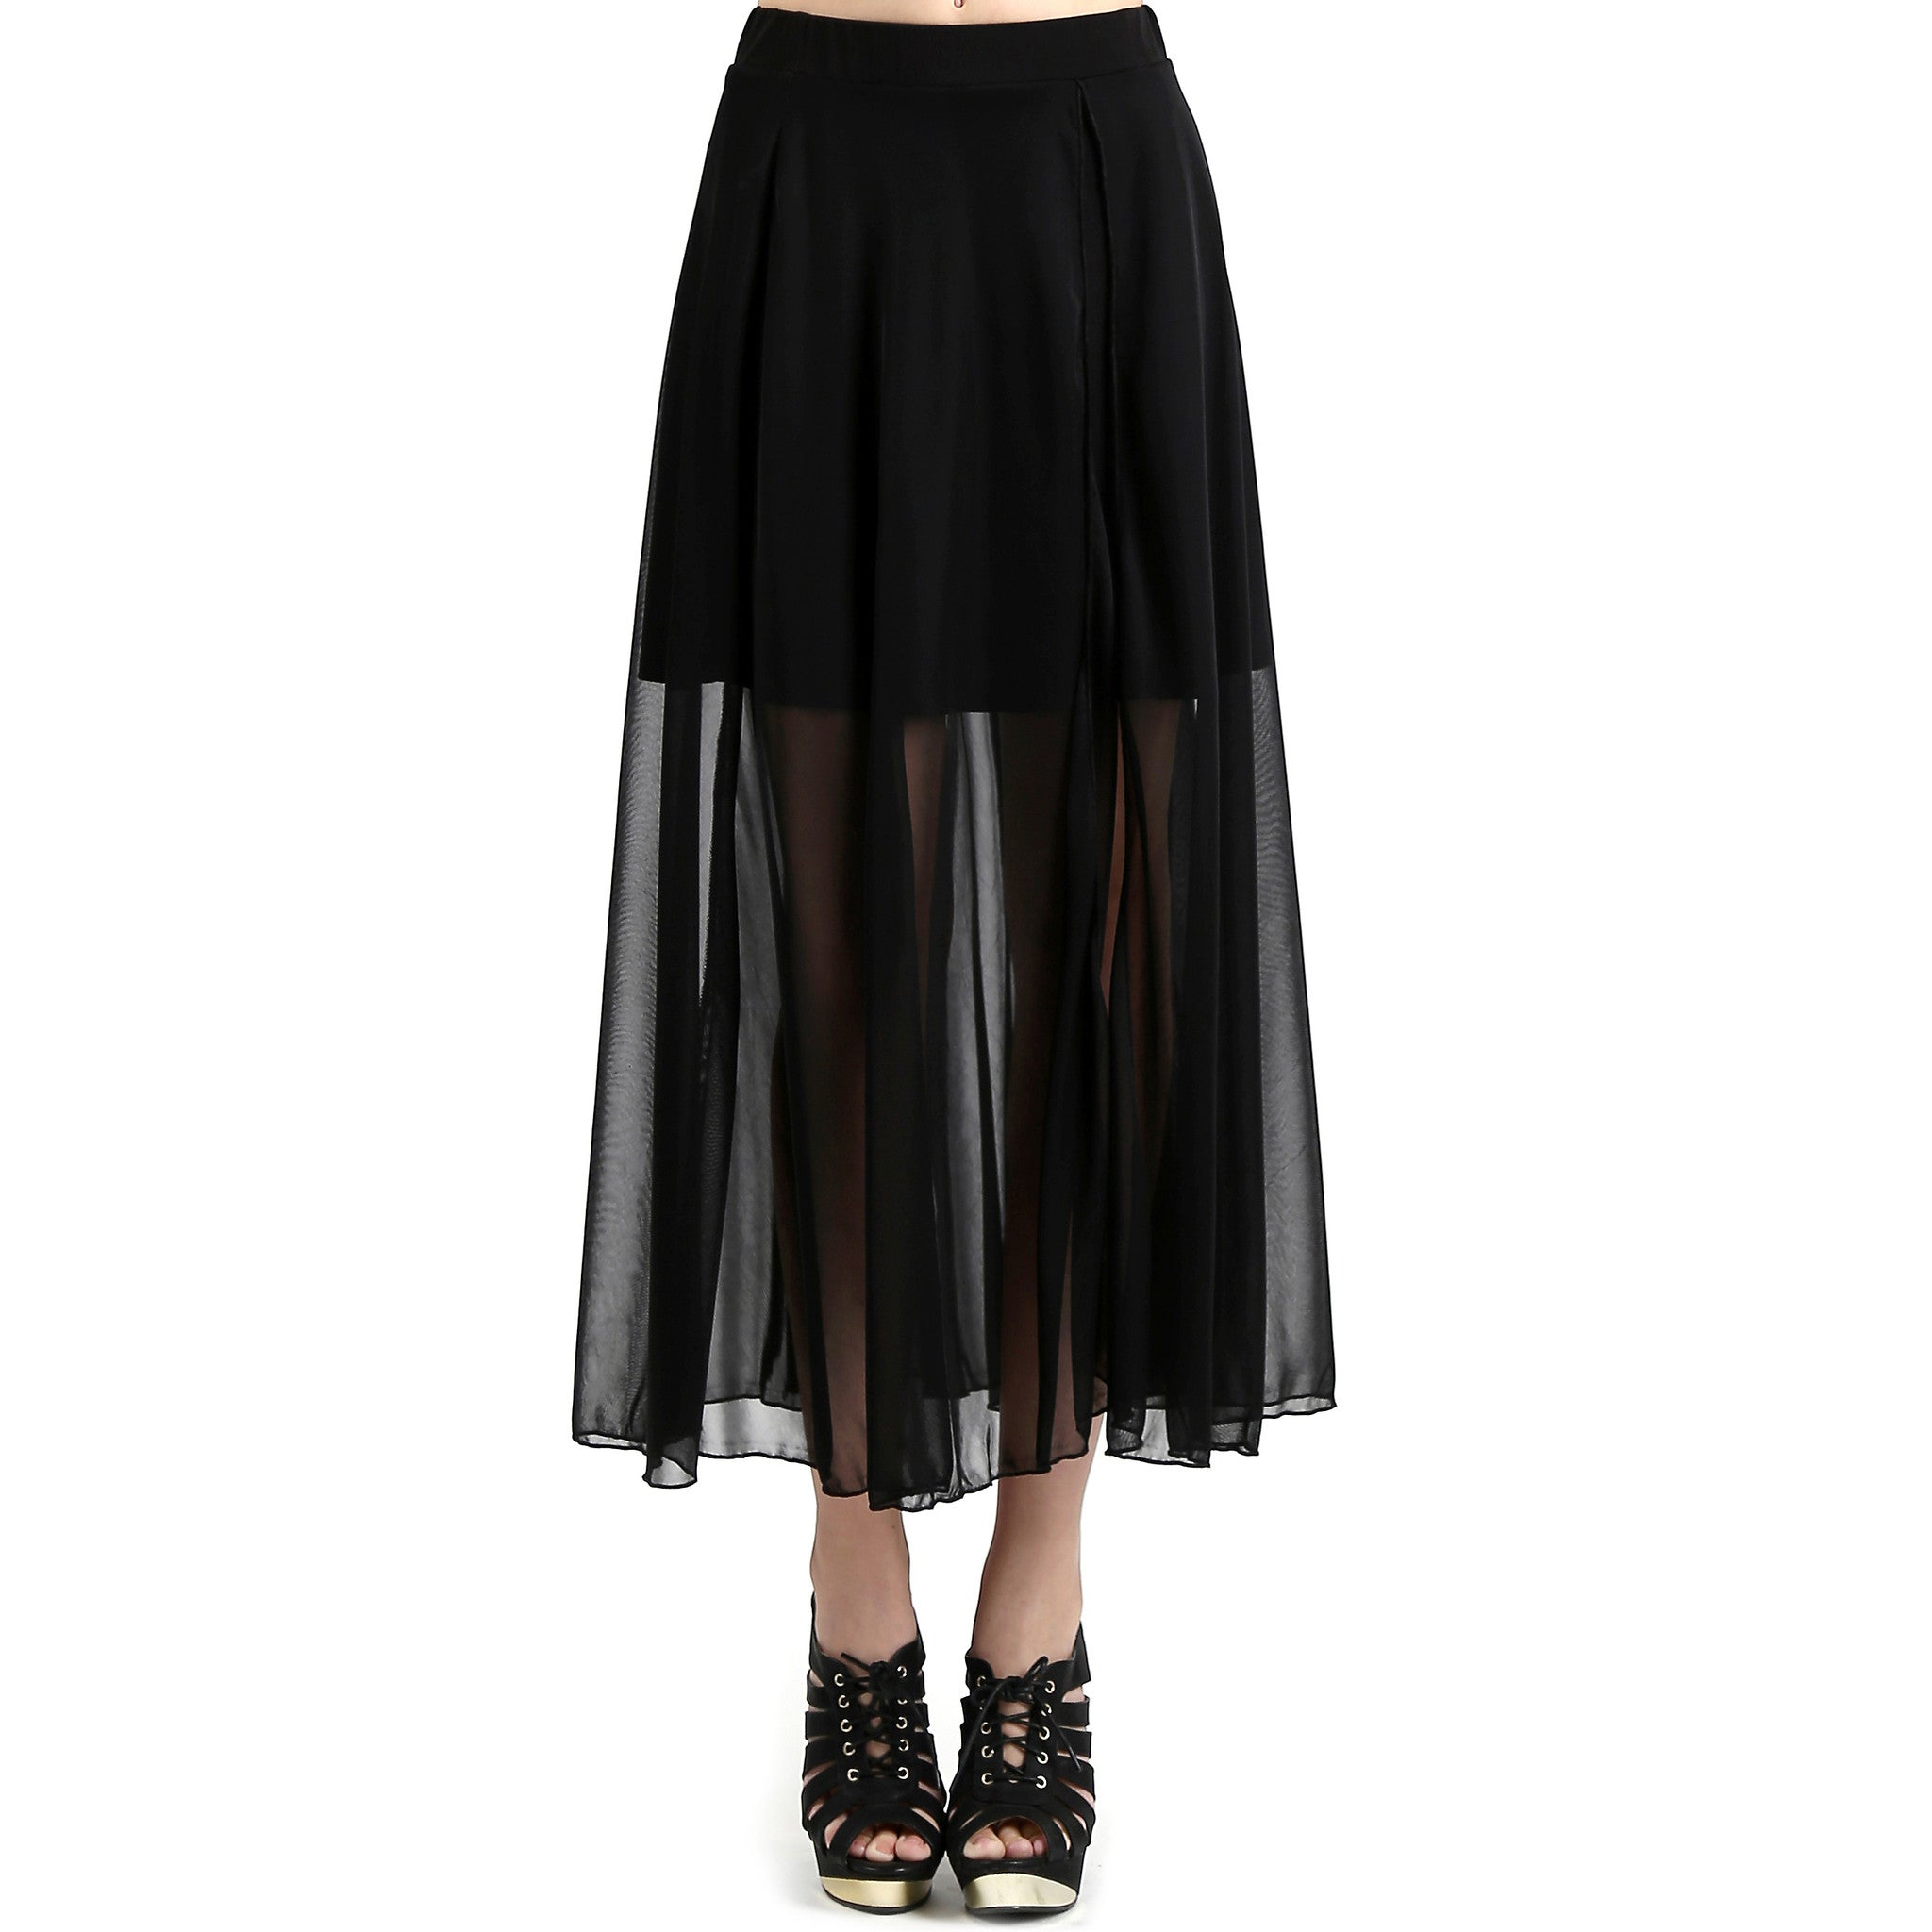 Evanese Women's Double Layered See Through Top Layer with Center Slit Long Skirt S, Black